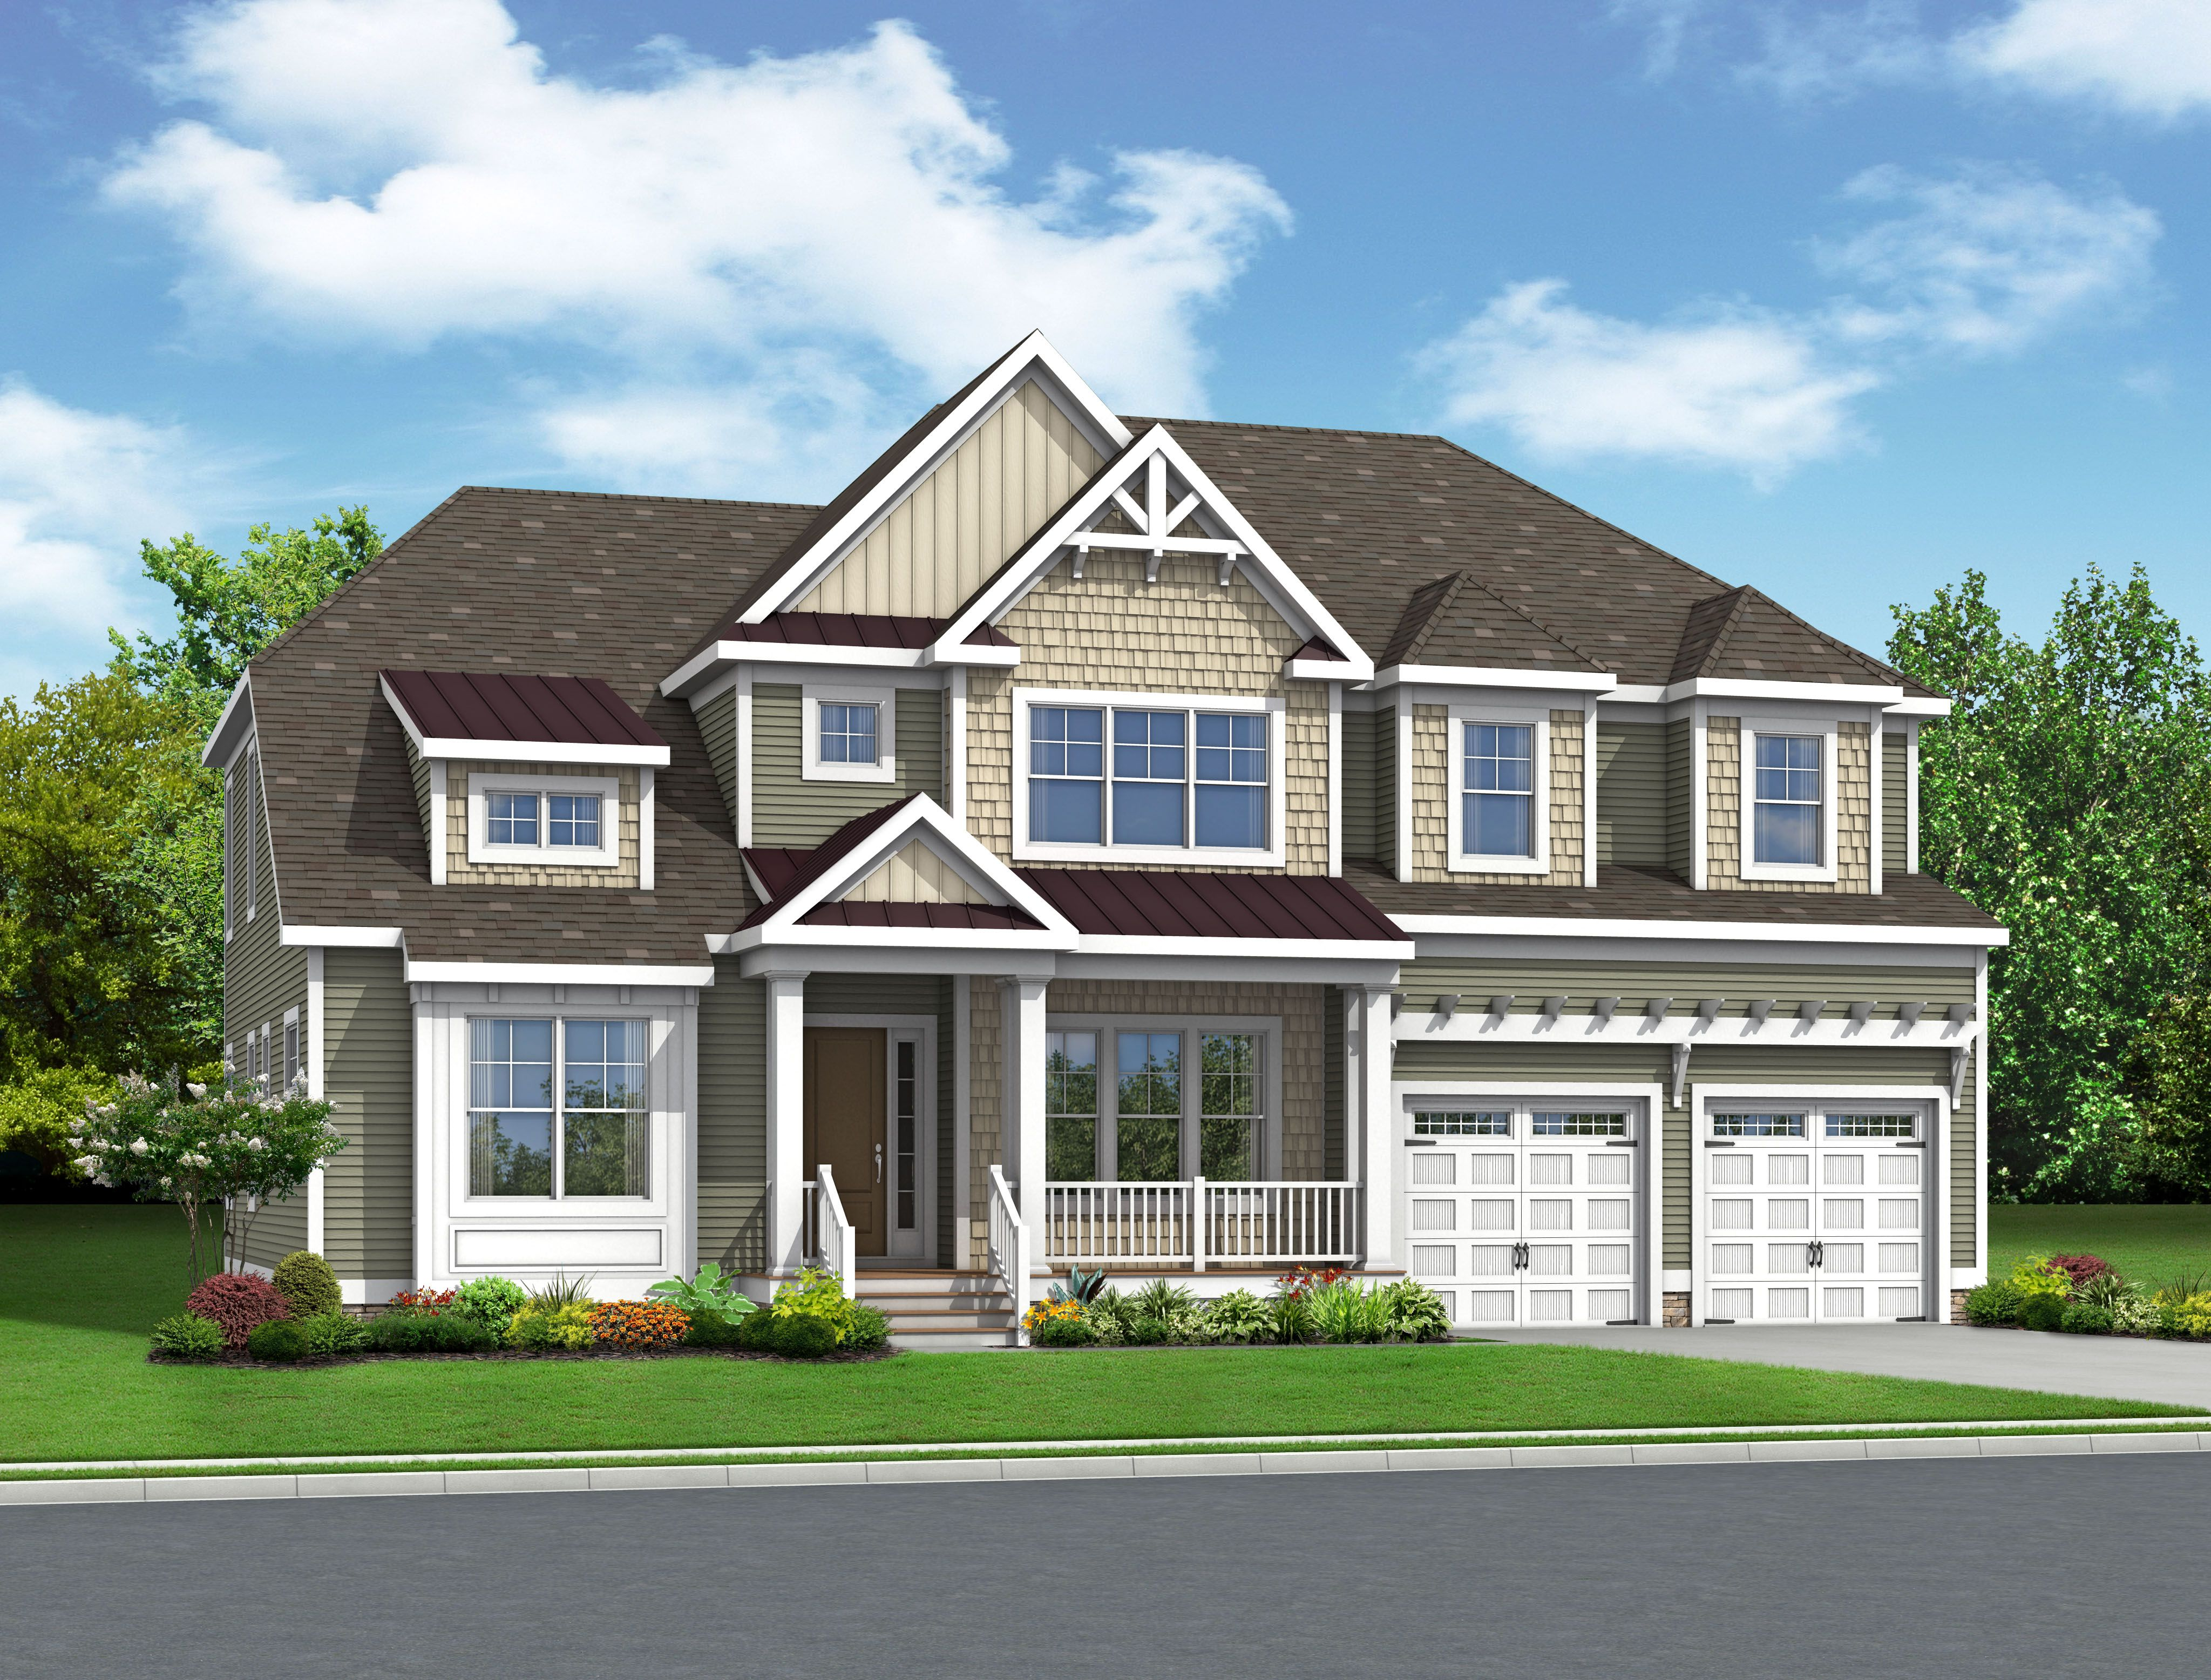 Single Family for Active at Bayside - The Carnegie 20811 Harbor Cove Selbyville, Delaware 19975 United States